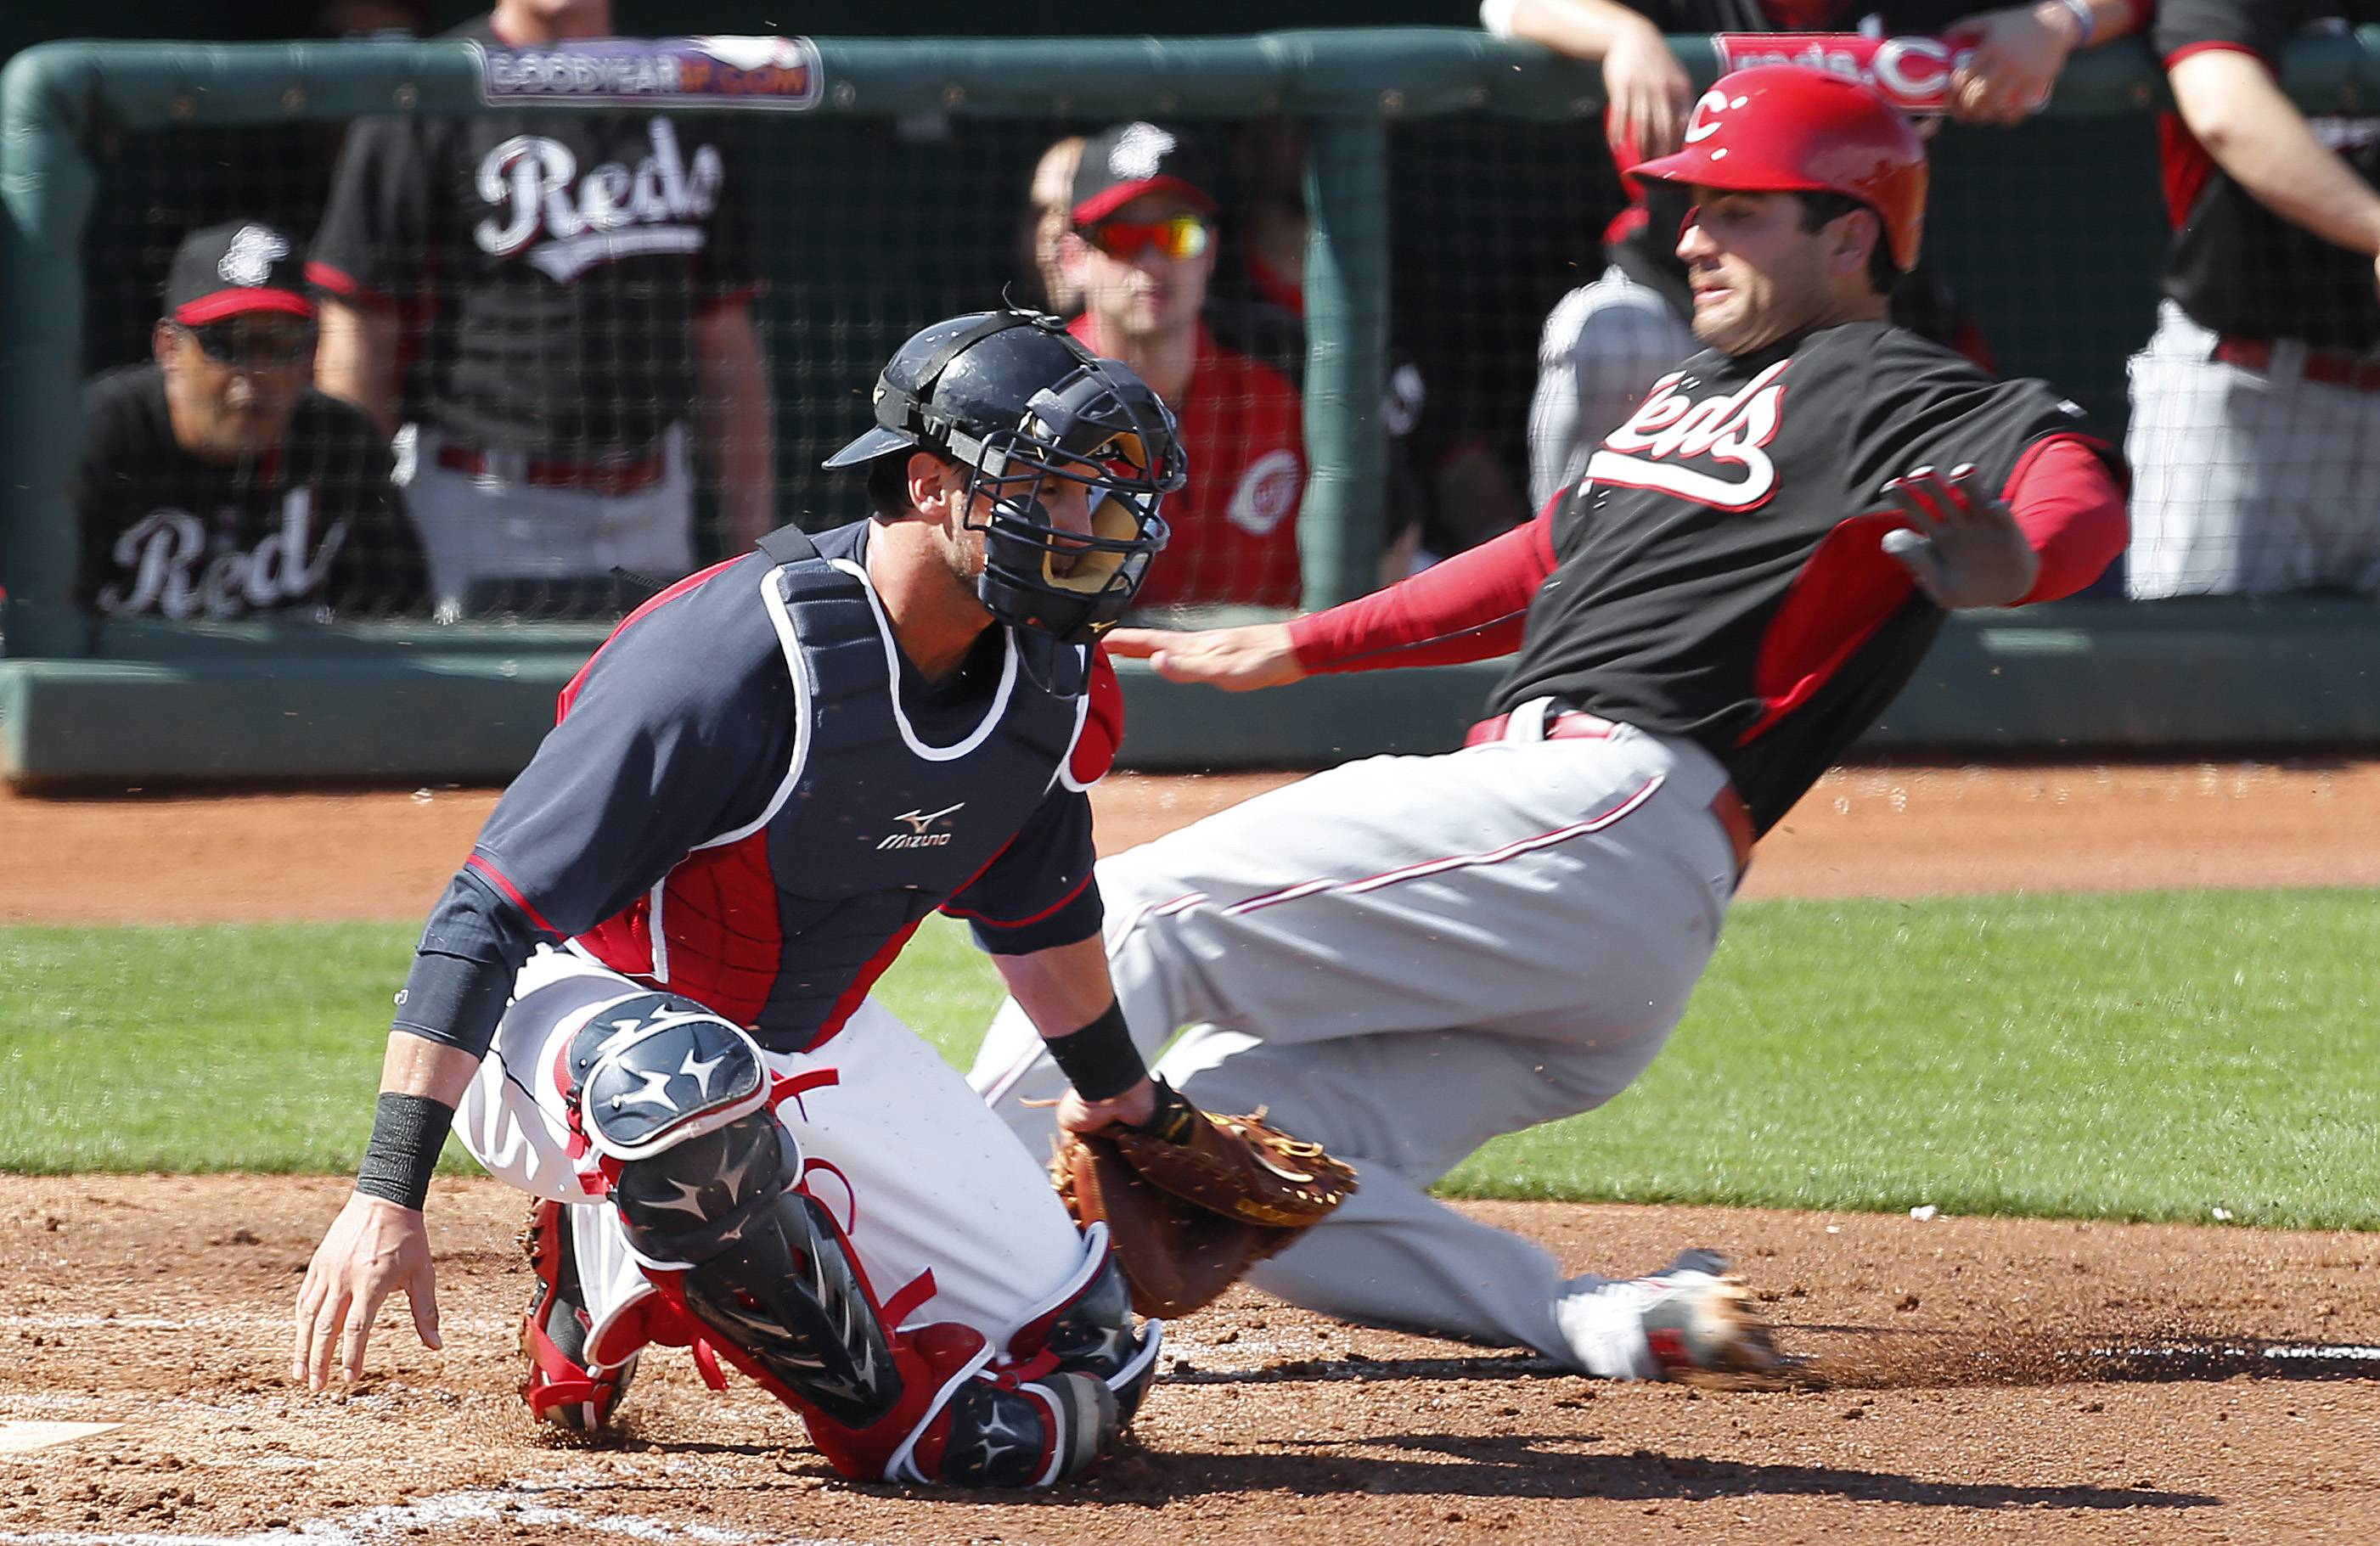 Cincinnati Reds' Joey Votto, right, scores as Cleveland Indians catcher Yan Gomes is late with the tag at home plate on a Ryan Ludwick single in the third inning of a Feb. 26 exhibition baseball game in Goodyear, Ariz.